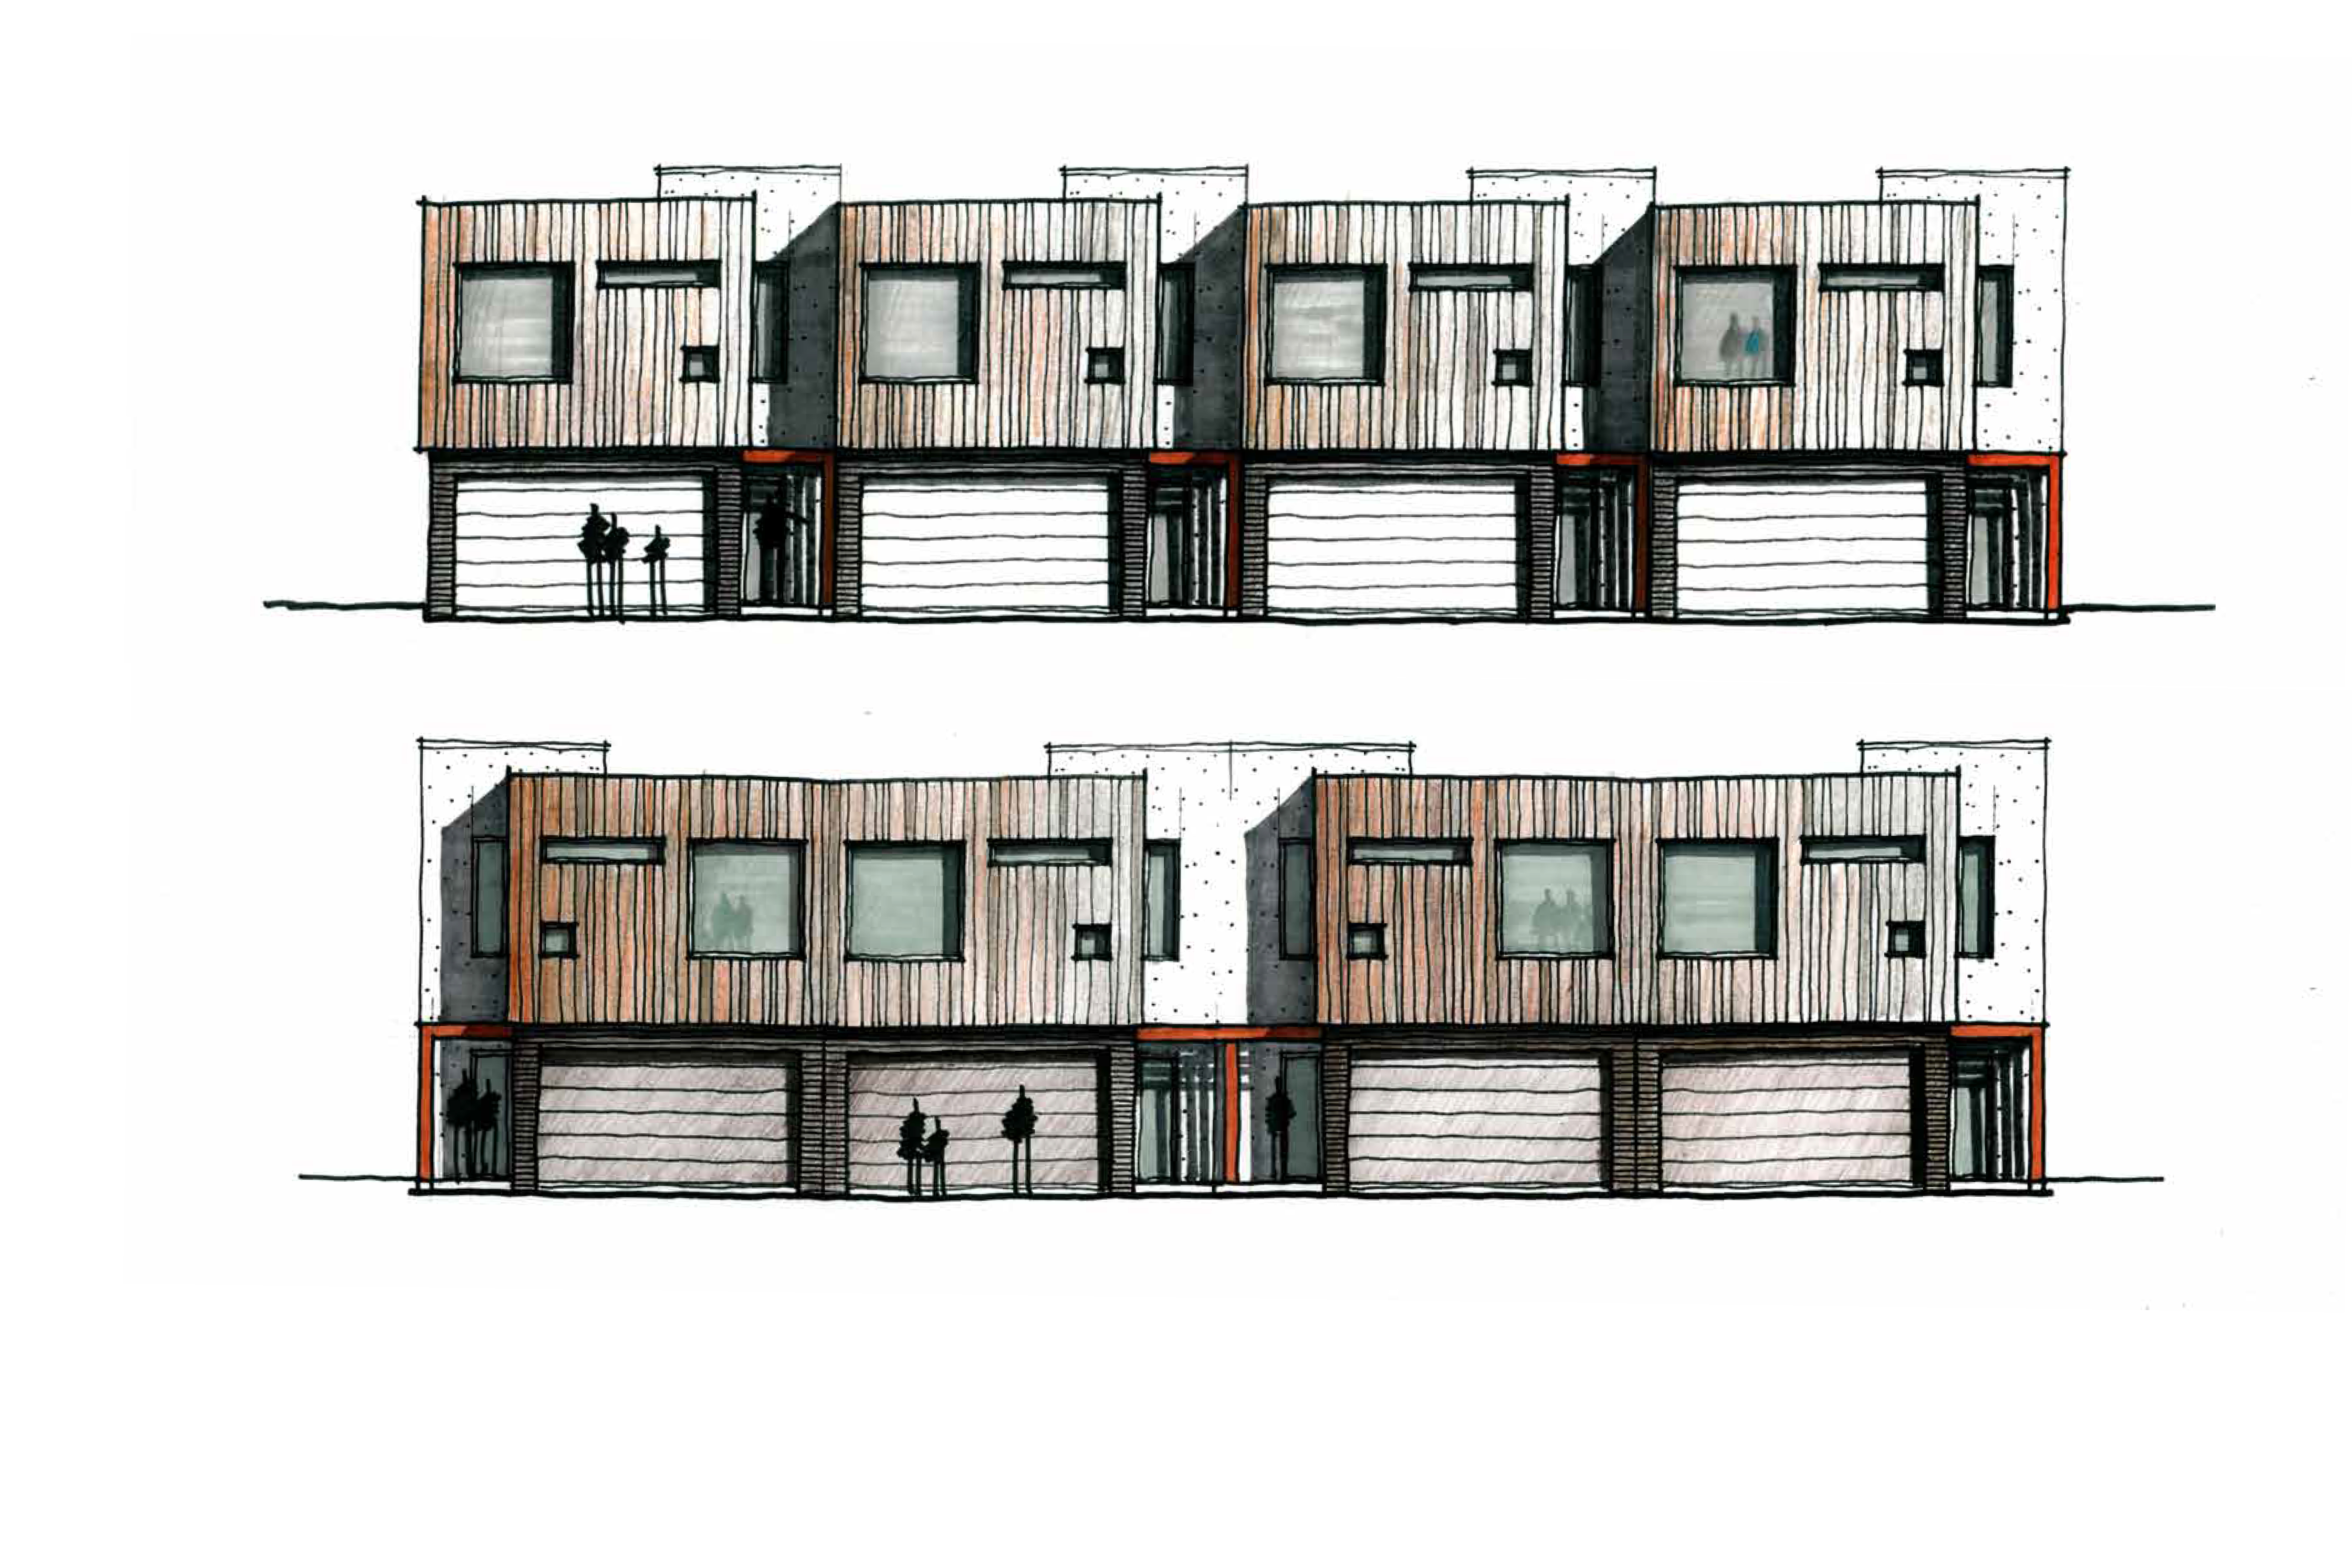 12th & Hargrave 2-Story Townhomes